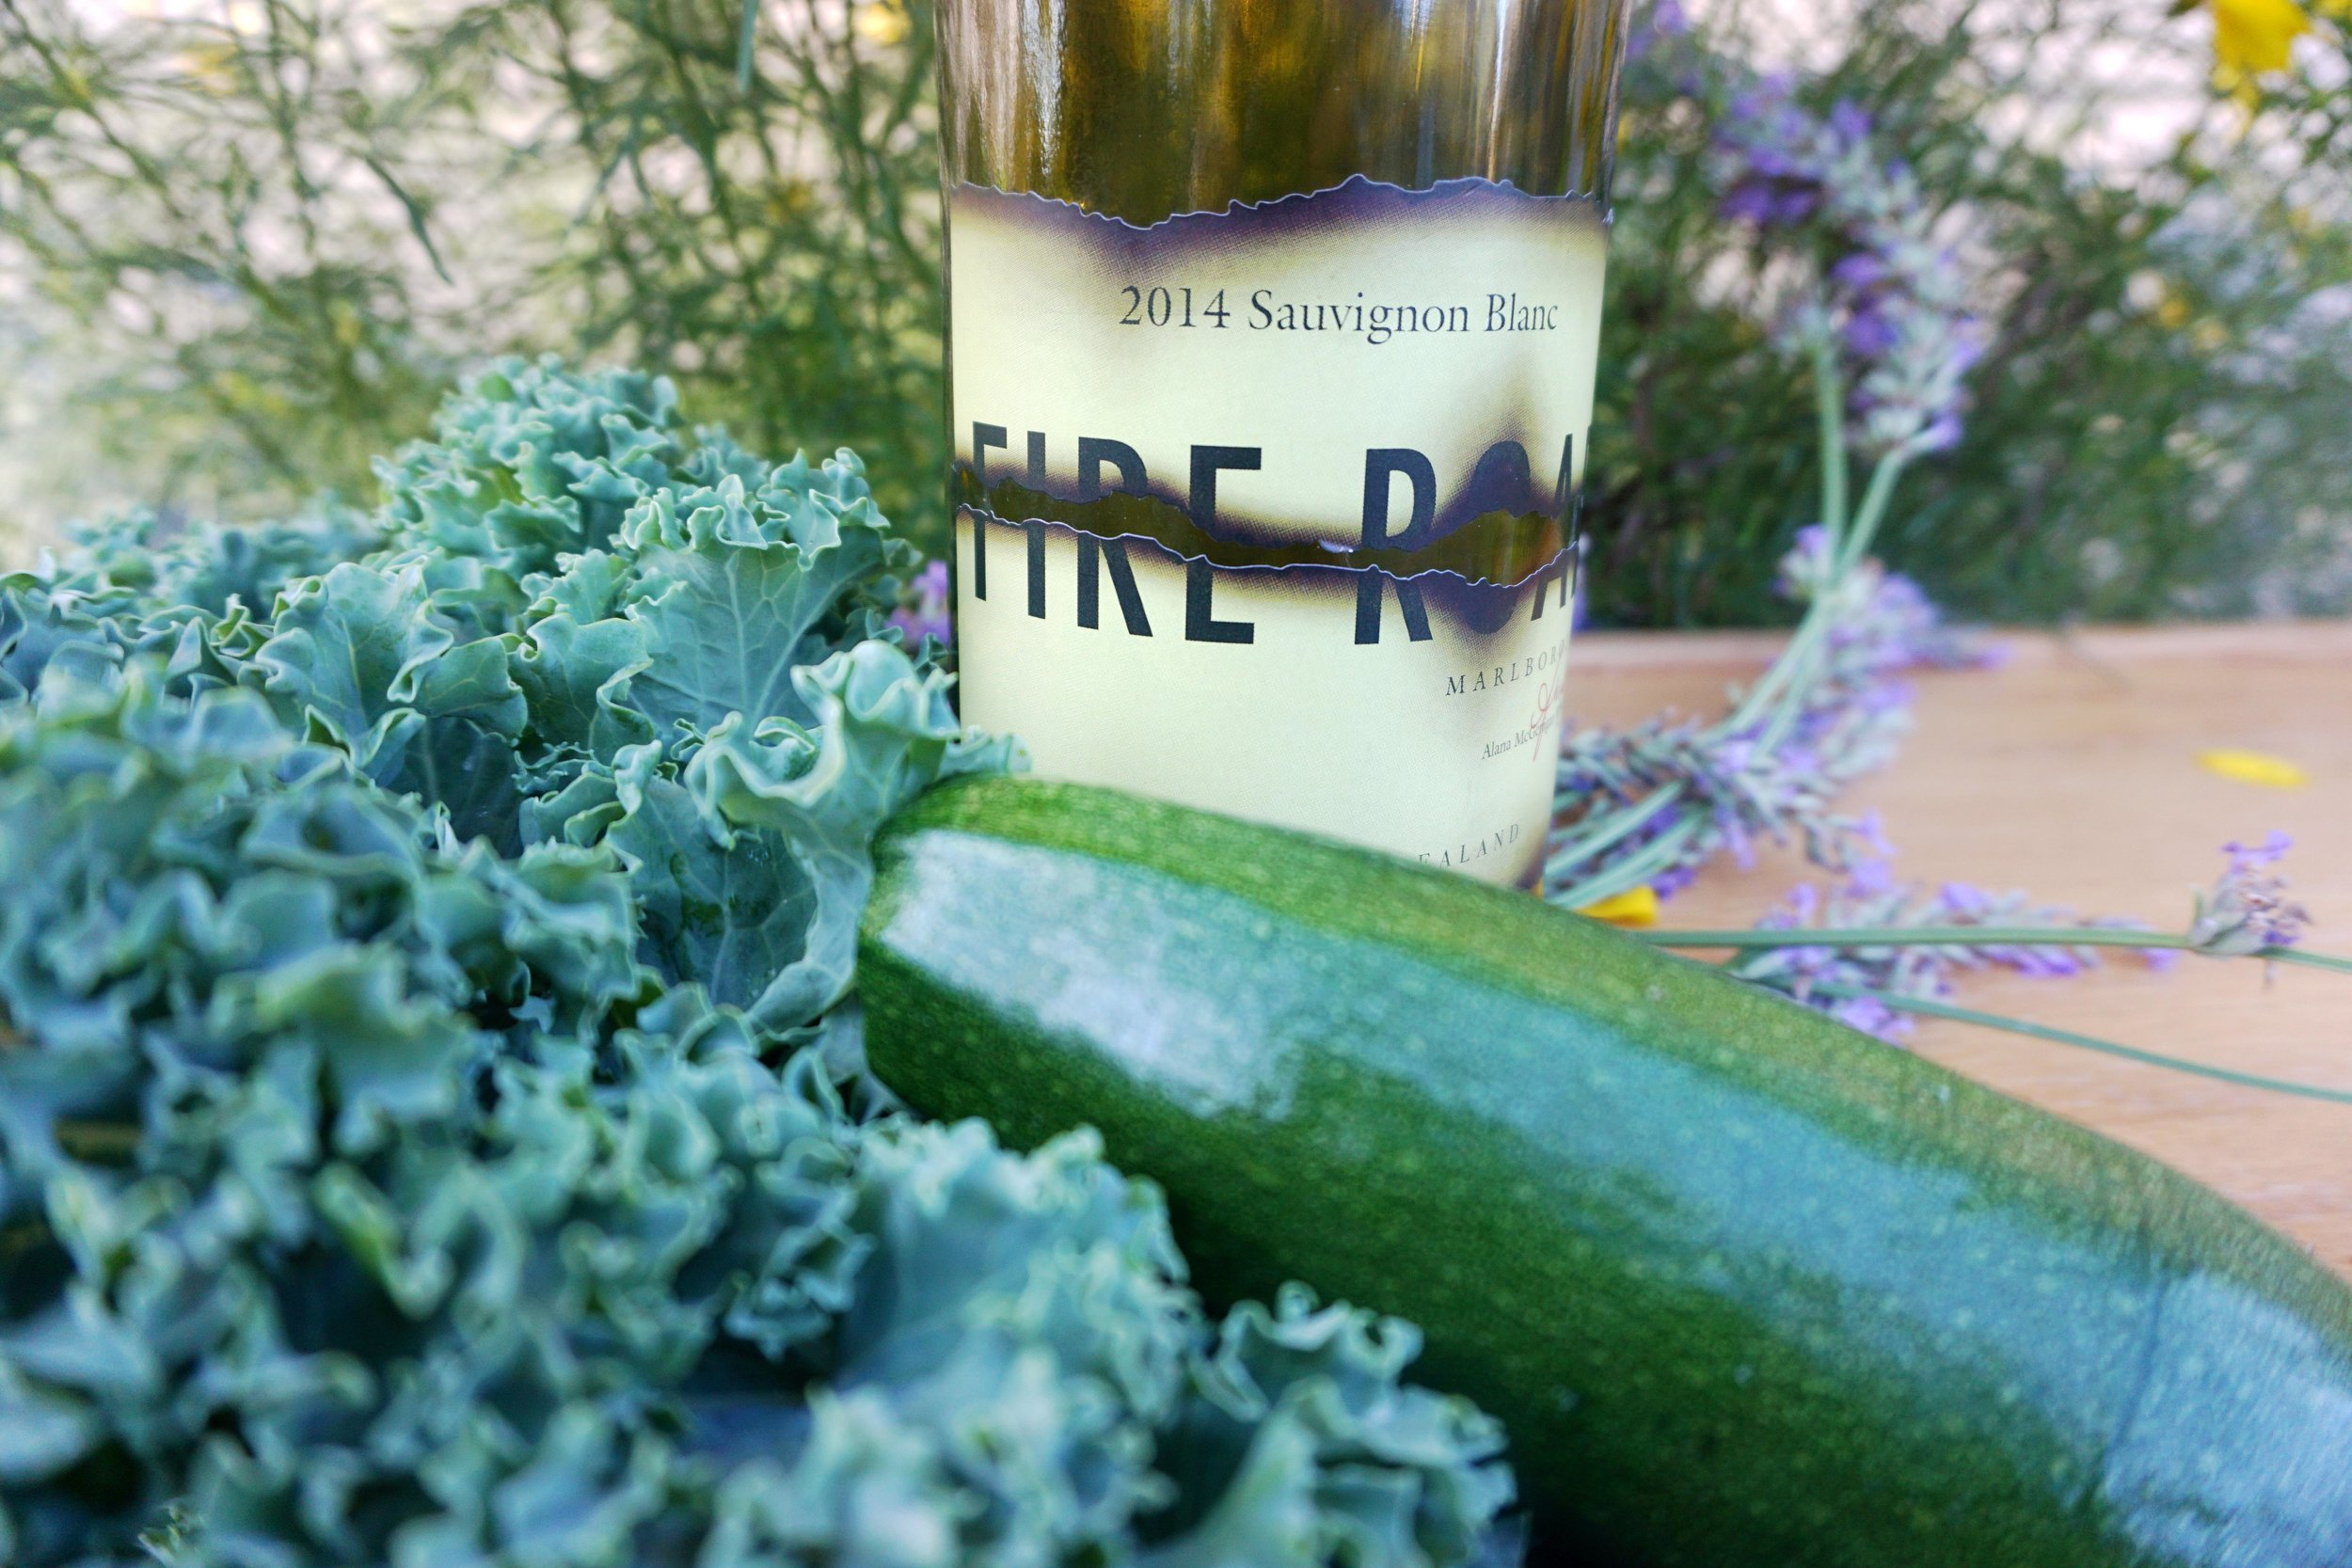 Sauvignon blanc, ranging from citrus to tropical notes, complements garden-fresh vegetables with its racy acidity, light grassy notes and medium to full body. Viki Eierdam